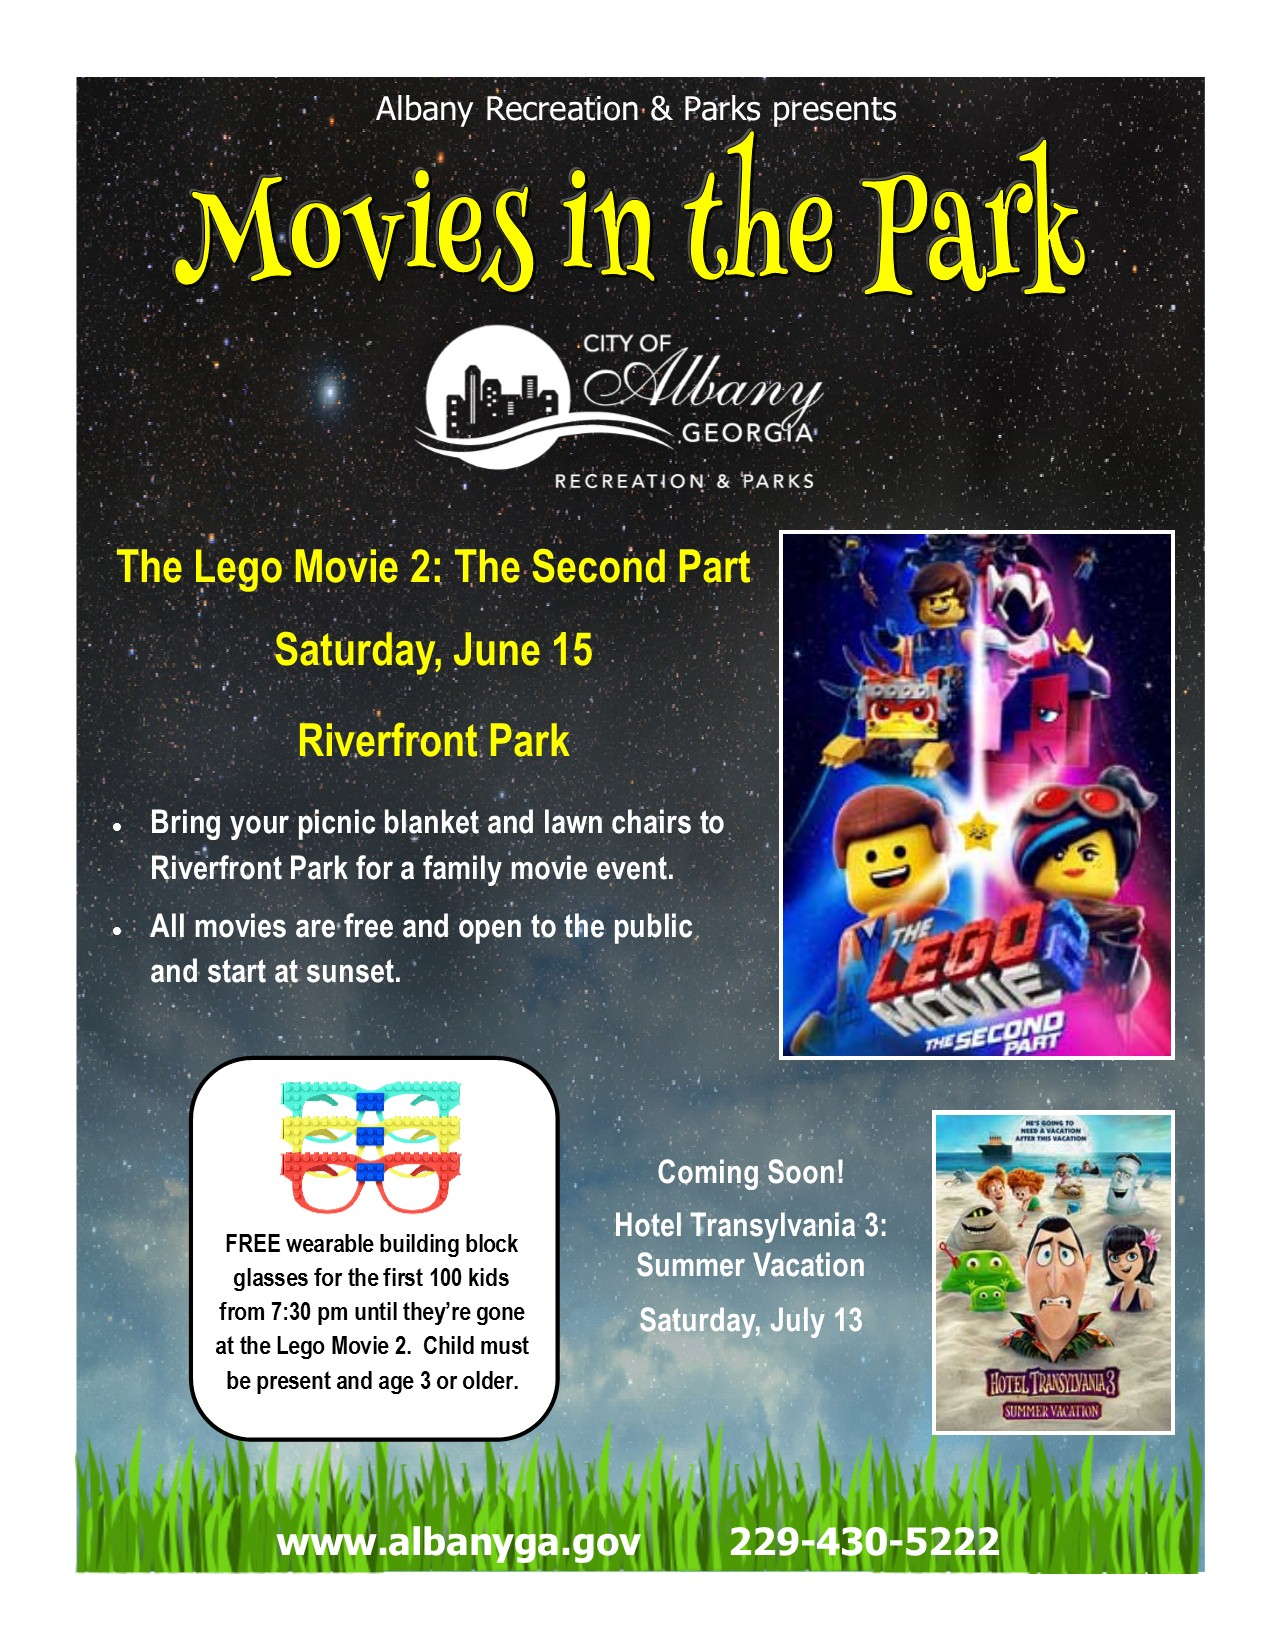 Movies in the Park: The Lego Movie 2: The Second Part